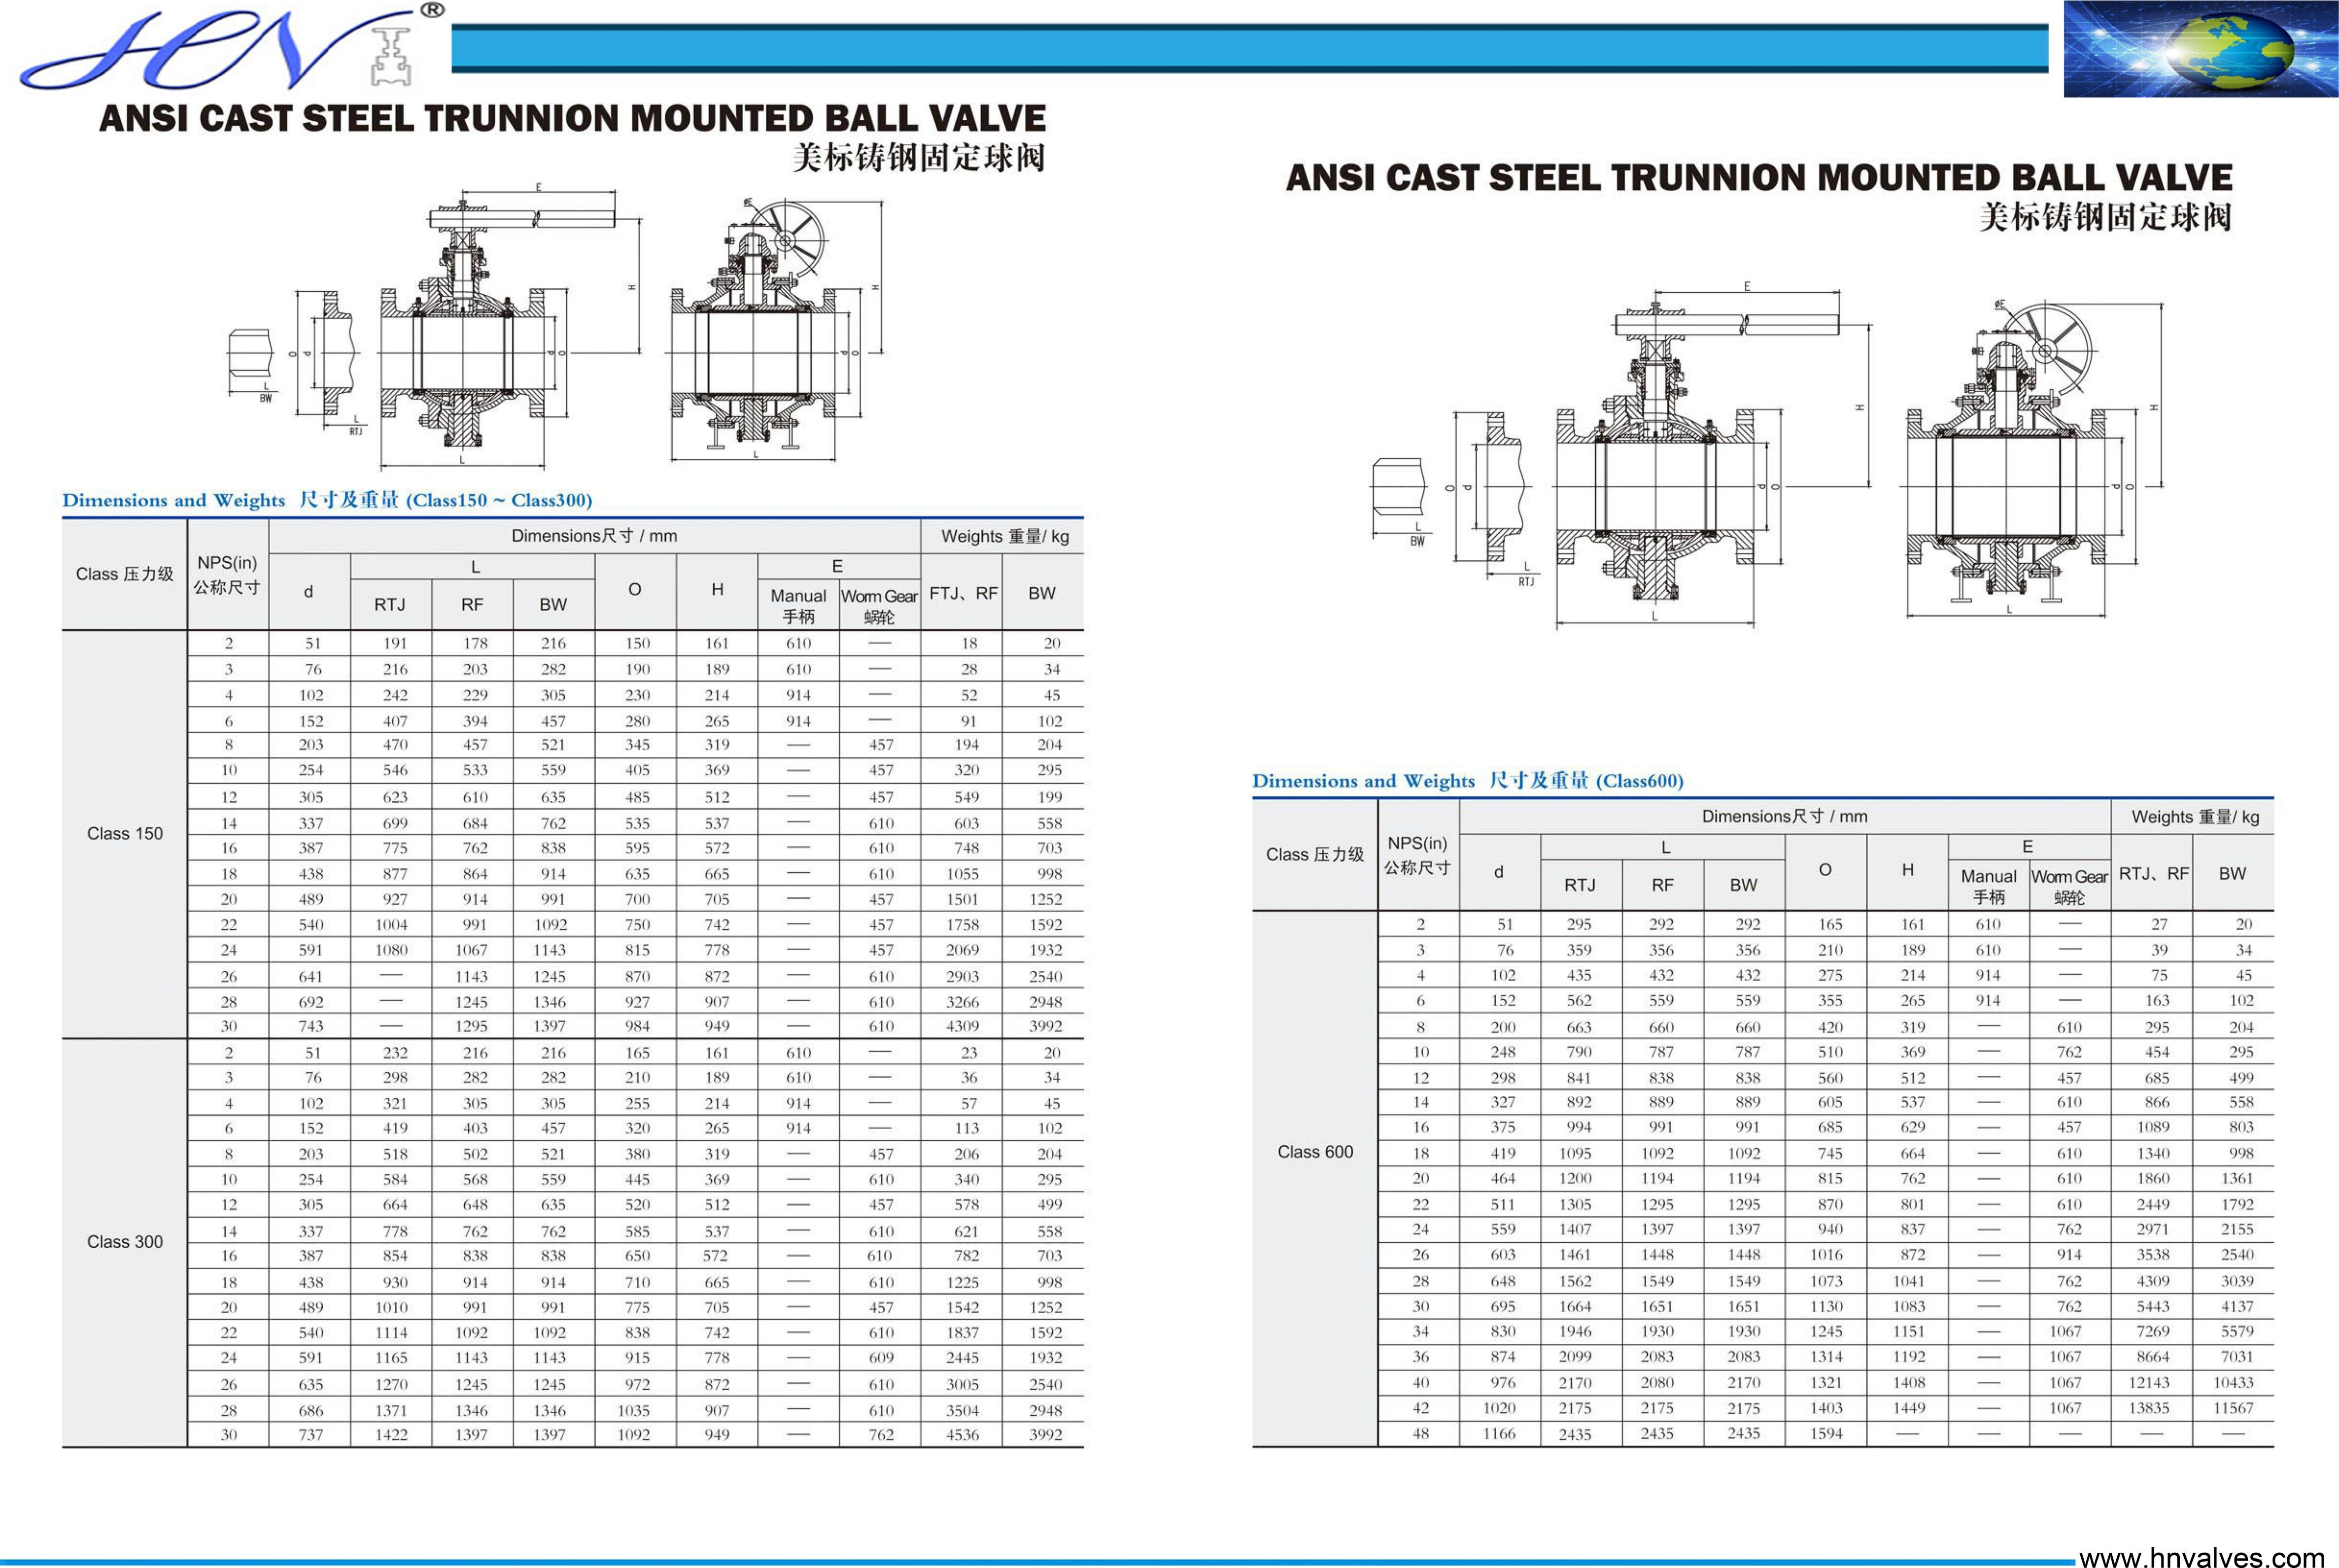 ANSI cast steel trunnion mounted ball valve